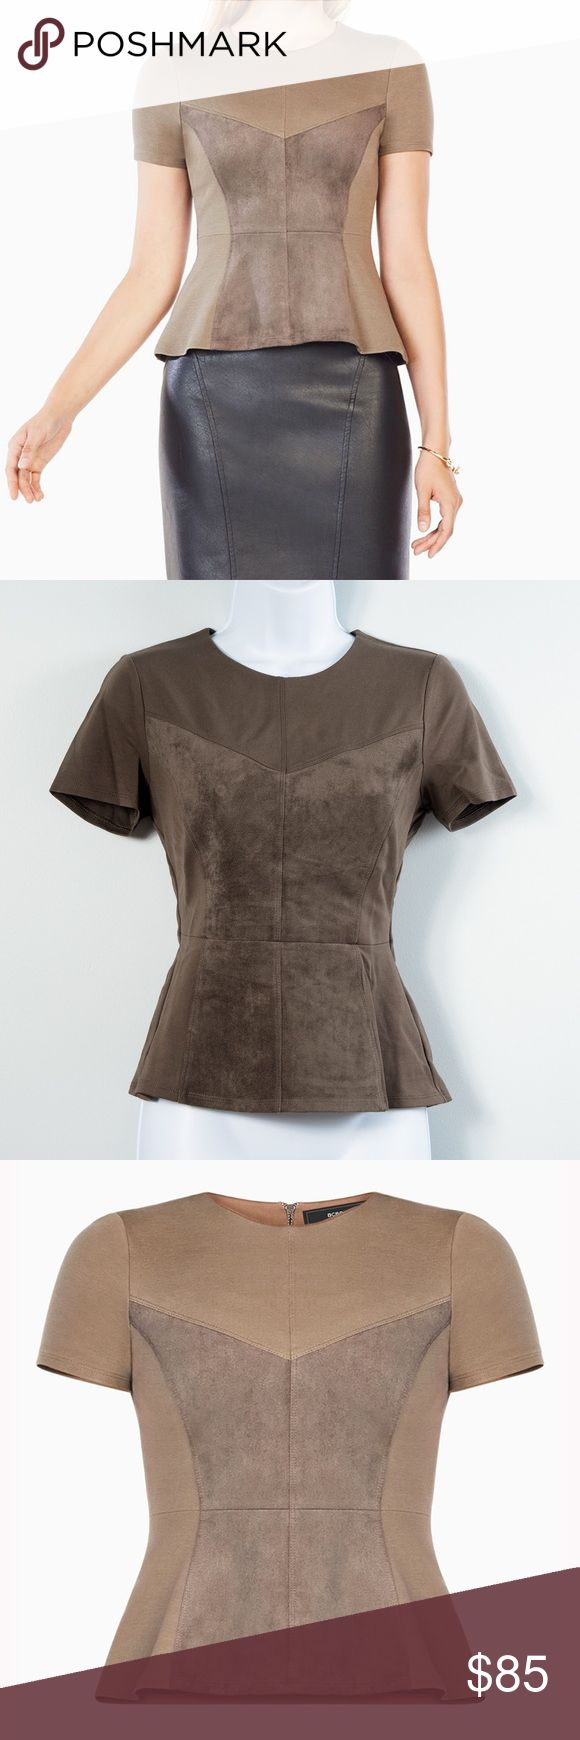 BCBGMAXAZRIA Denna Faux Suede Top Brand new - have tags but not attached Denna faux suede top.  In a textural blend of ponte and faux suede, this figure-skimming top is designed with short sleeves and a subtle peplum hem that works from office to after-hours. Back zipper closure, Fabric 1: 62% rayon, 32% nylon, 6% spandex ponte; fabric 2: 94% polyester, 6% spandex faux suede; lining: 92% polyester, 8% spandex jersey. Washable. Mid-weight, stretch fabric. True to fit.  Size x-small.  Retail…